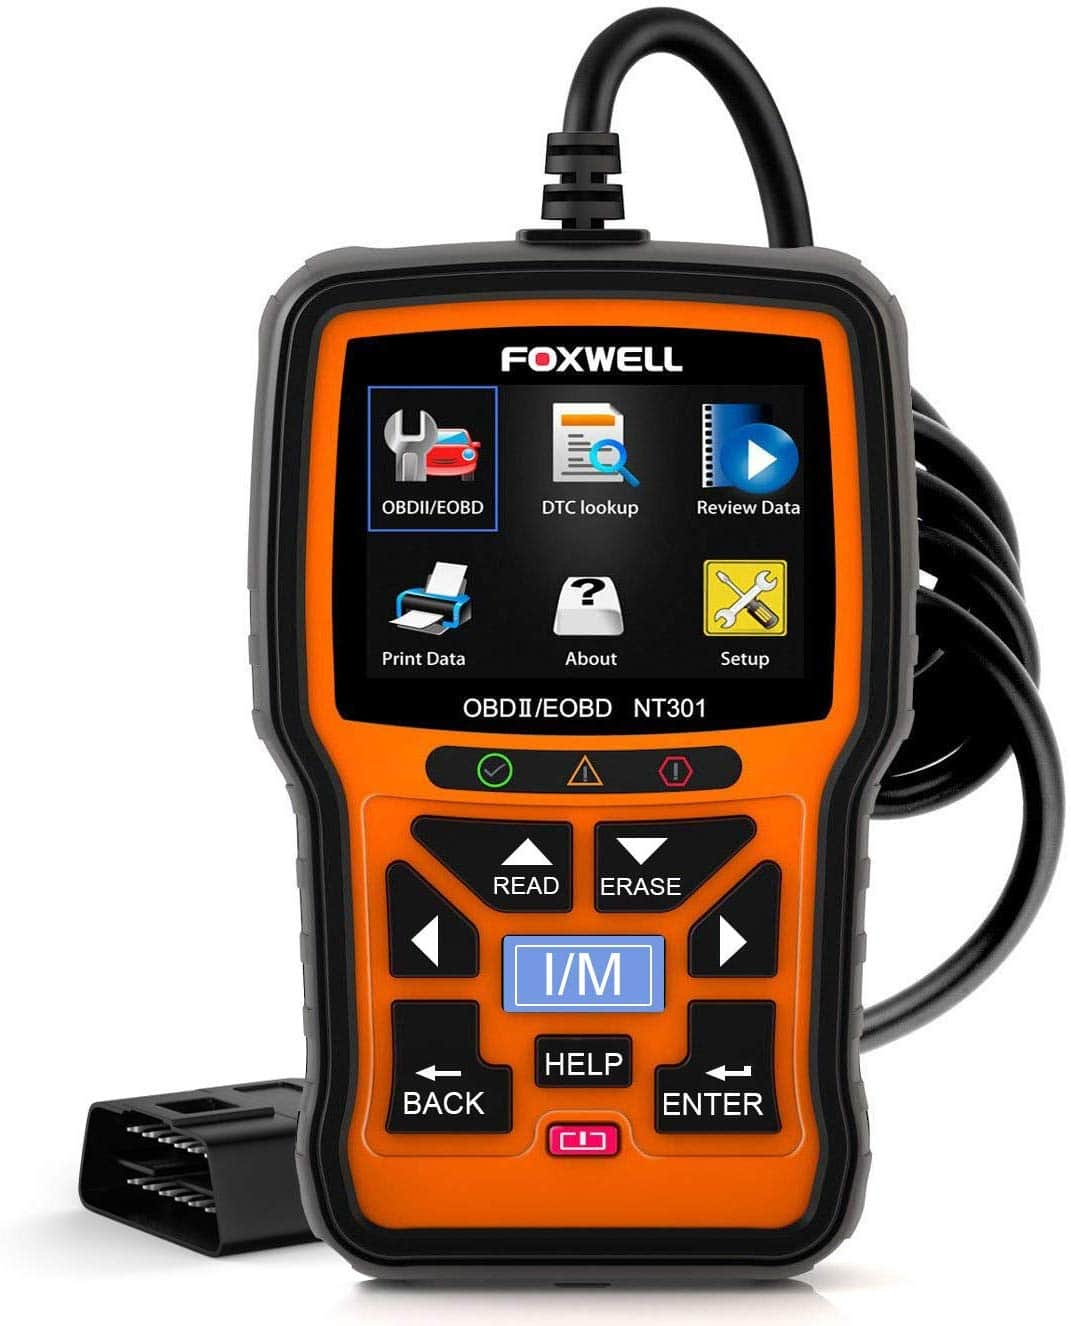 Best Foxwell Scanner Reviews: 7 All-Time Popular List Of 2020